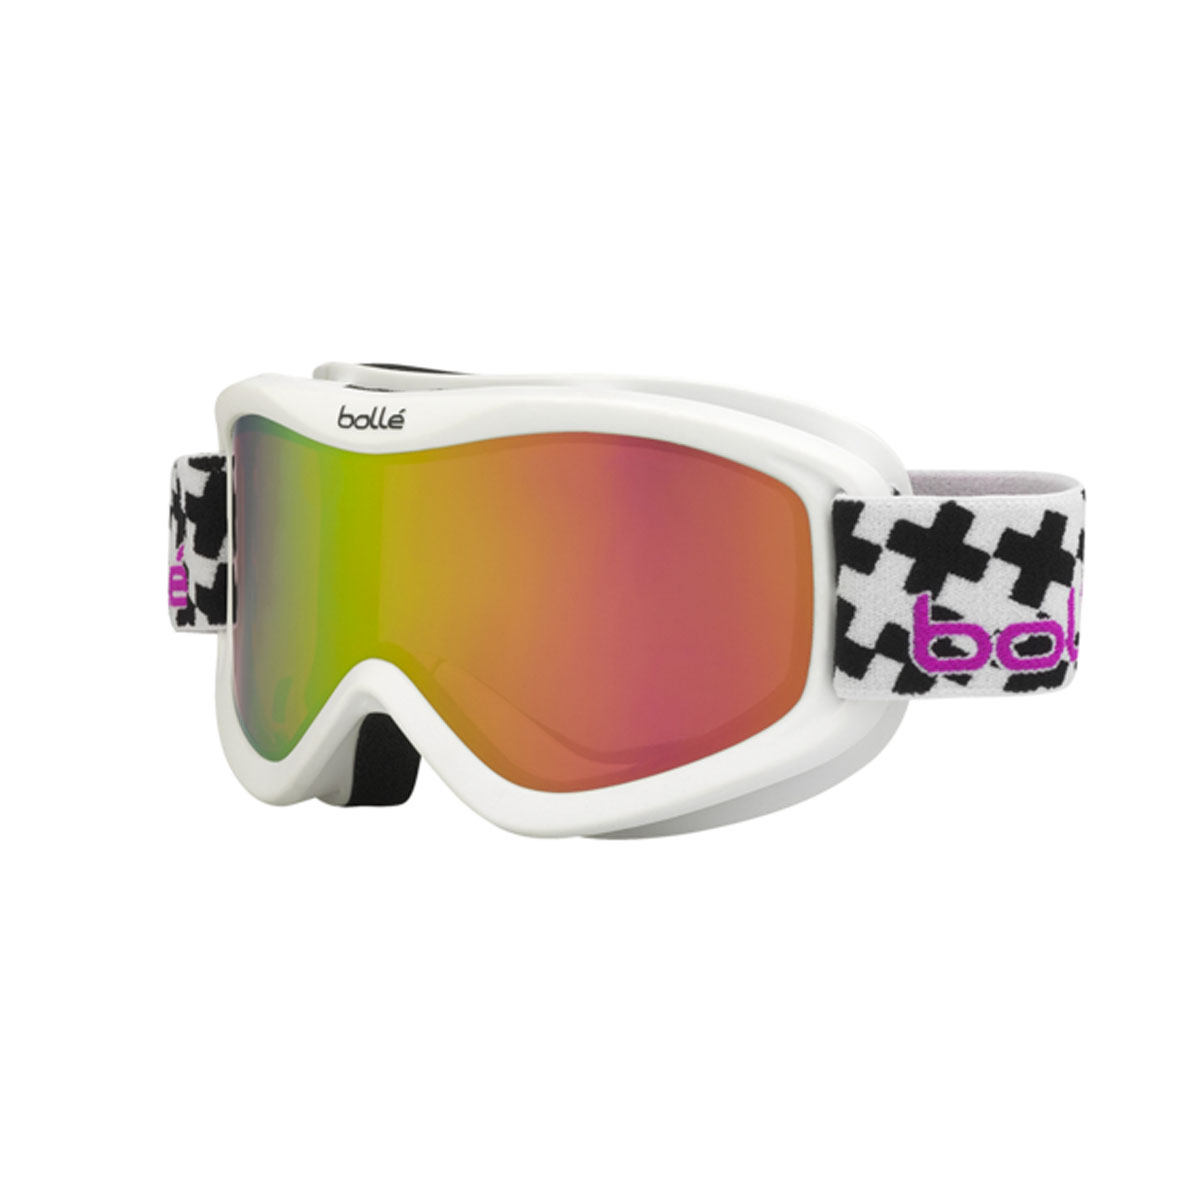 Bolle Volt Plus Snow Goggles Matte White Cross Frame Rose Gold Lens 21361 by Bolle